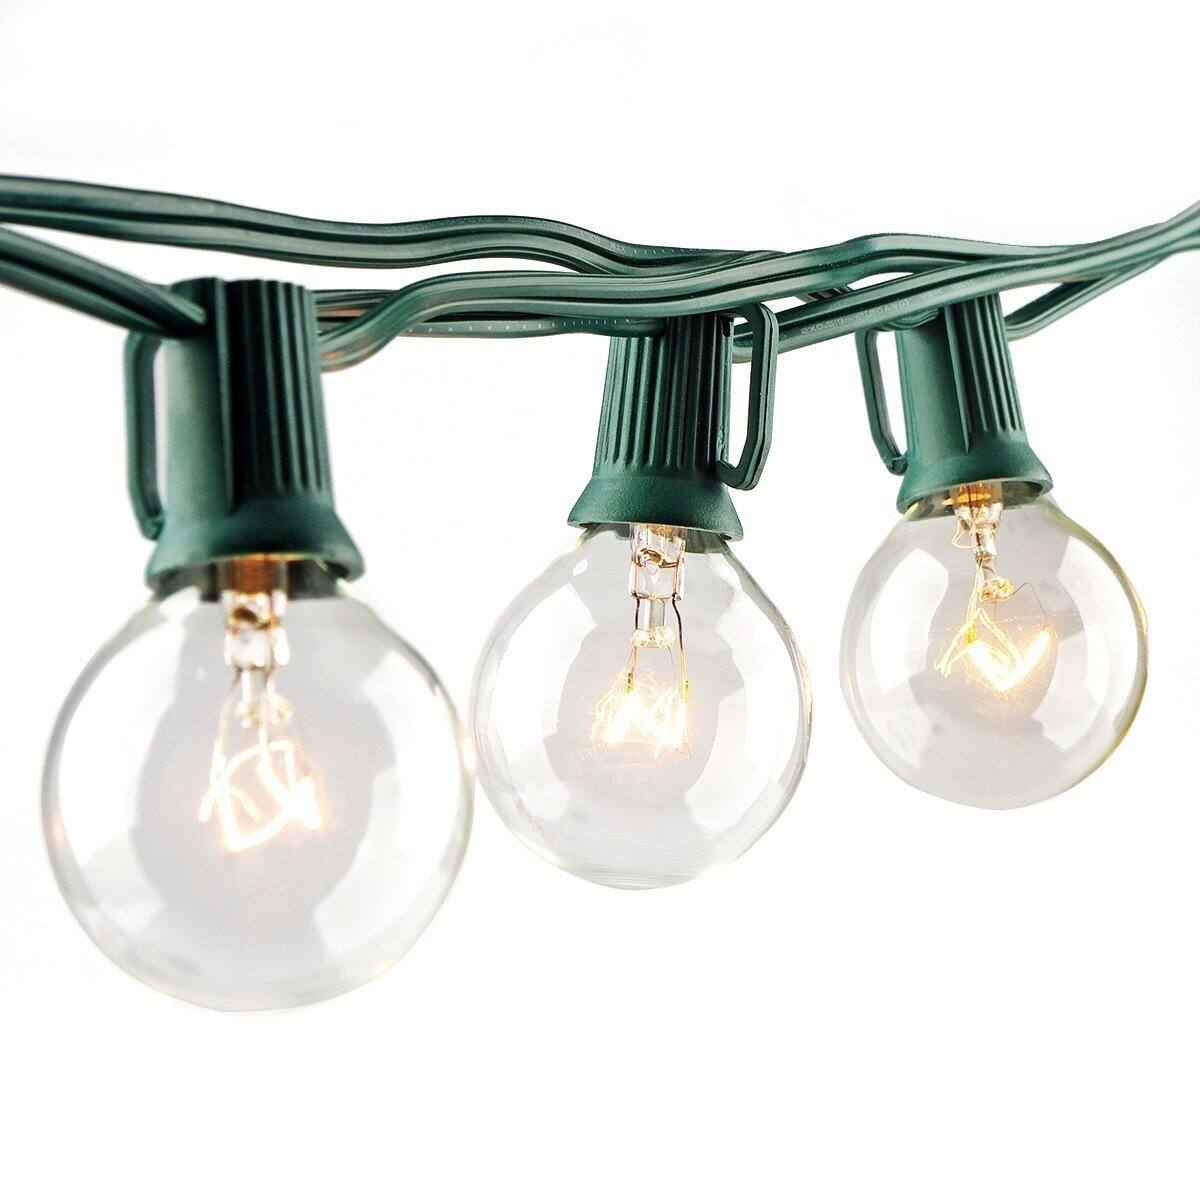 25' Outdoor String Light with G40 Clear Globe Bulbs $9.47 @Amazon